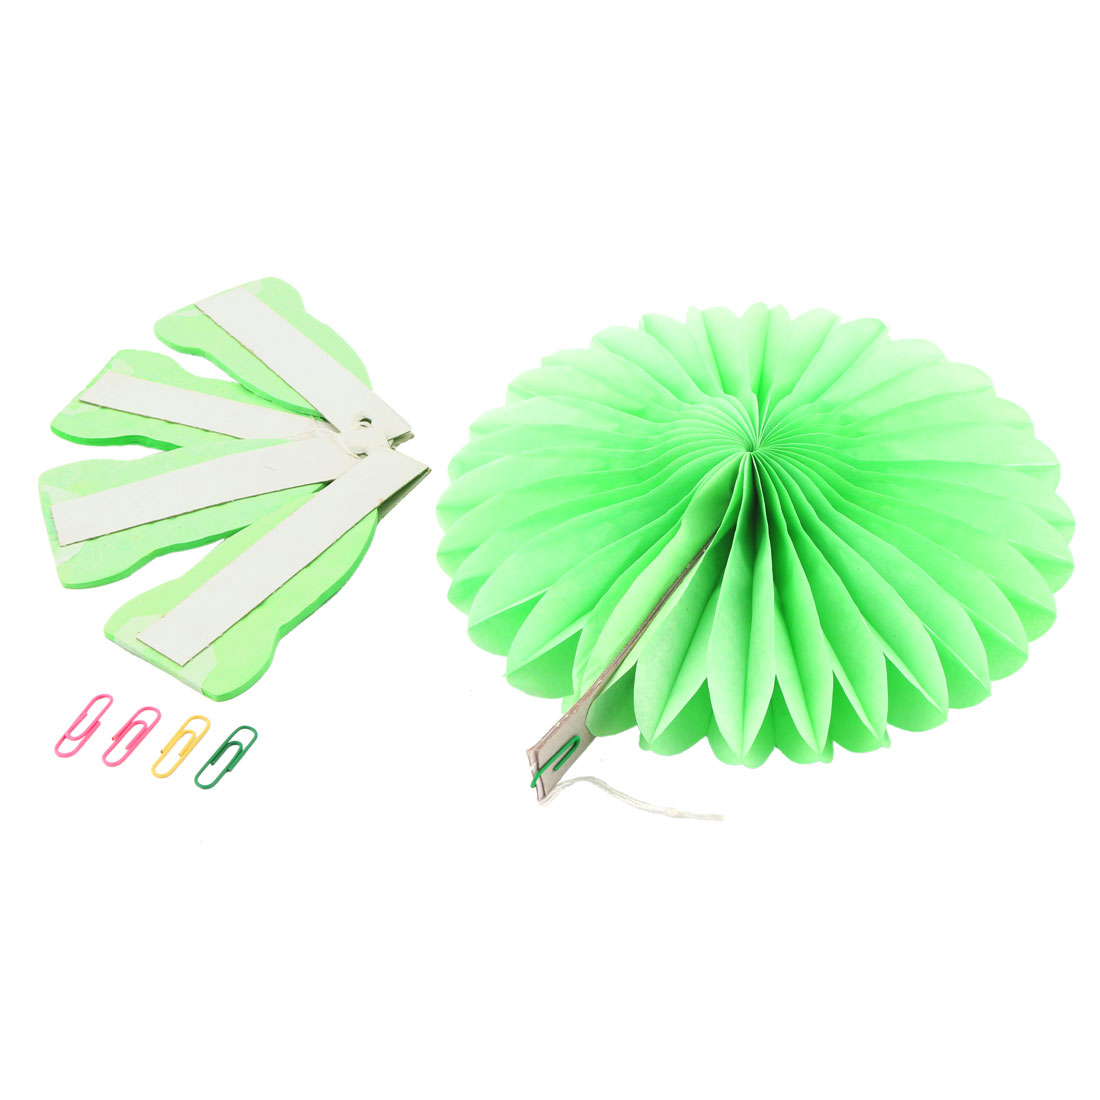 Tissue Paper Wedding Party Hanging Decoration Wheel Fan Honeycomb Flower Green 5pcs